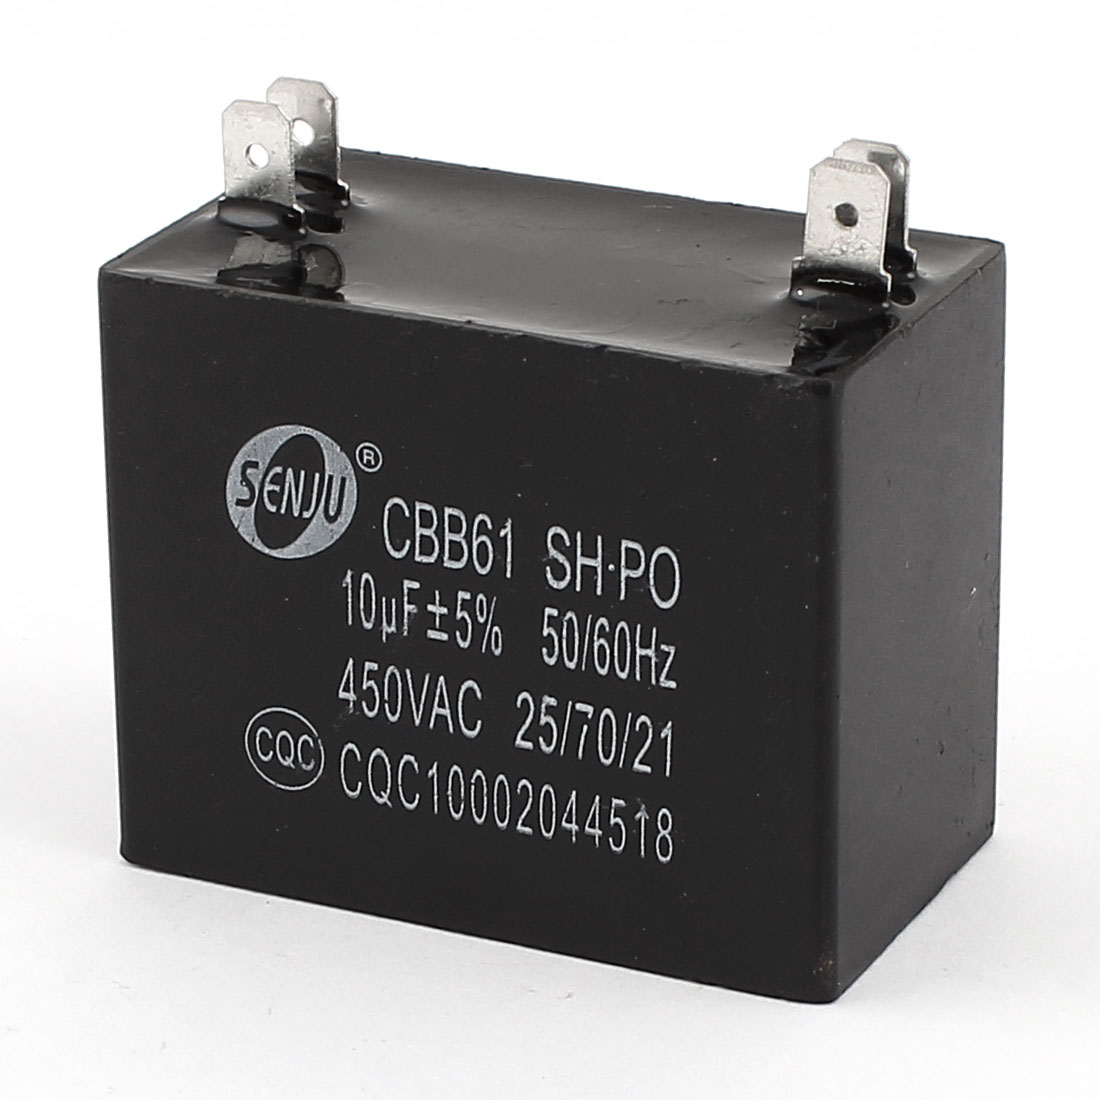 CBB61 AC 450V 10uF 4Pins 50/60Hz Rectangular Water Heater Polypropylene Film Motor Run Capacitor